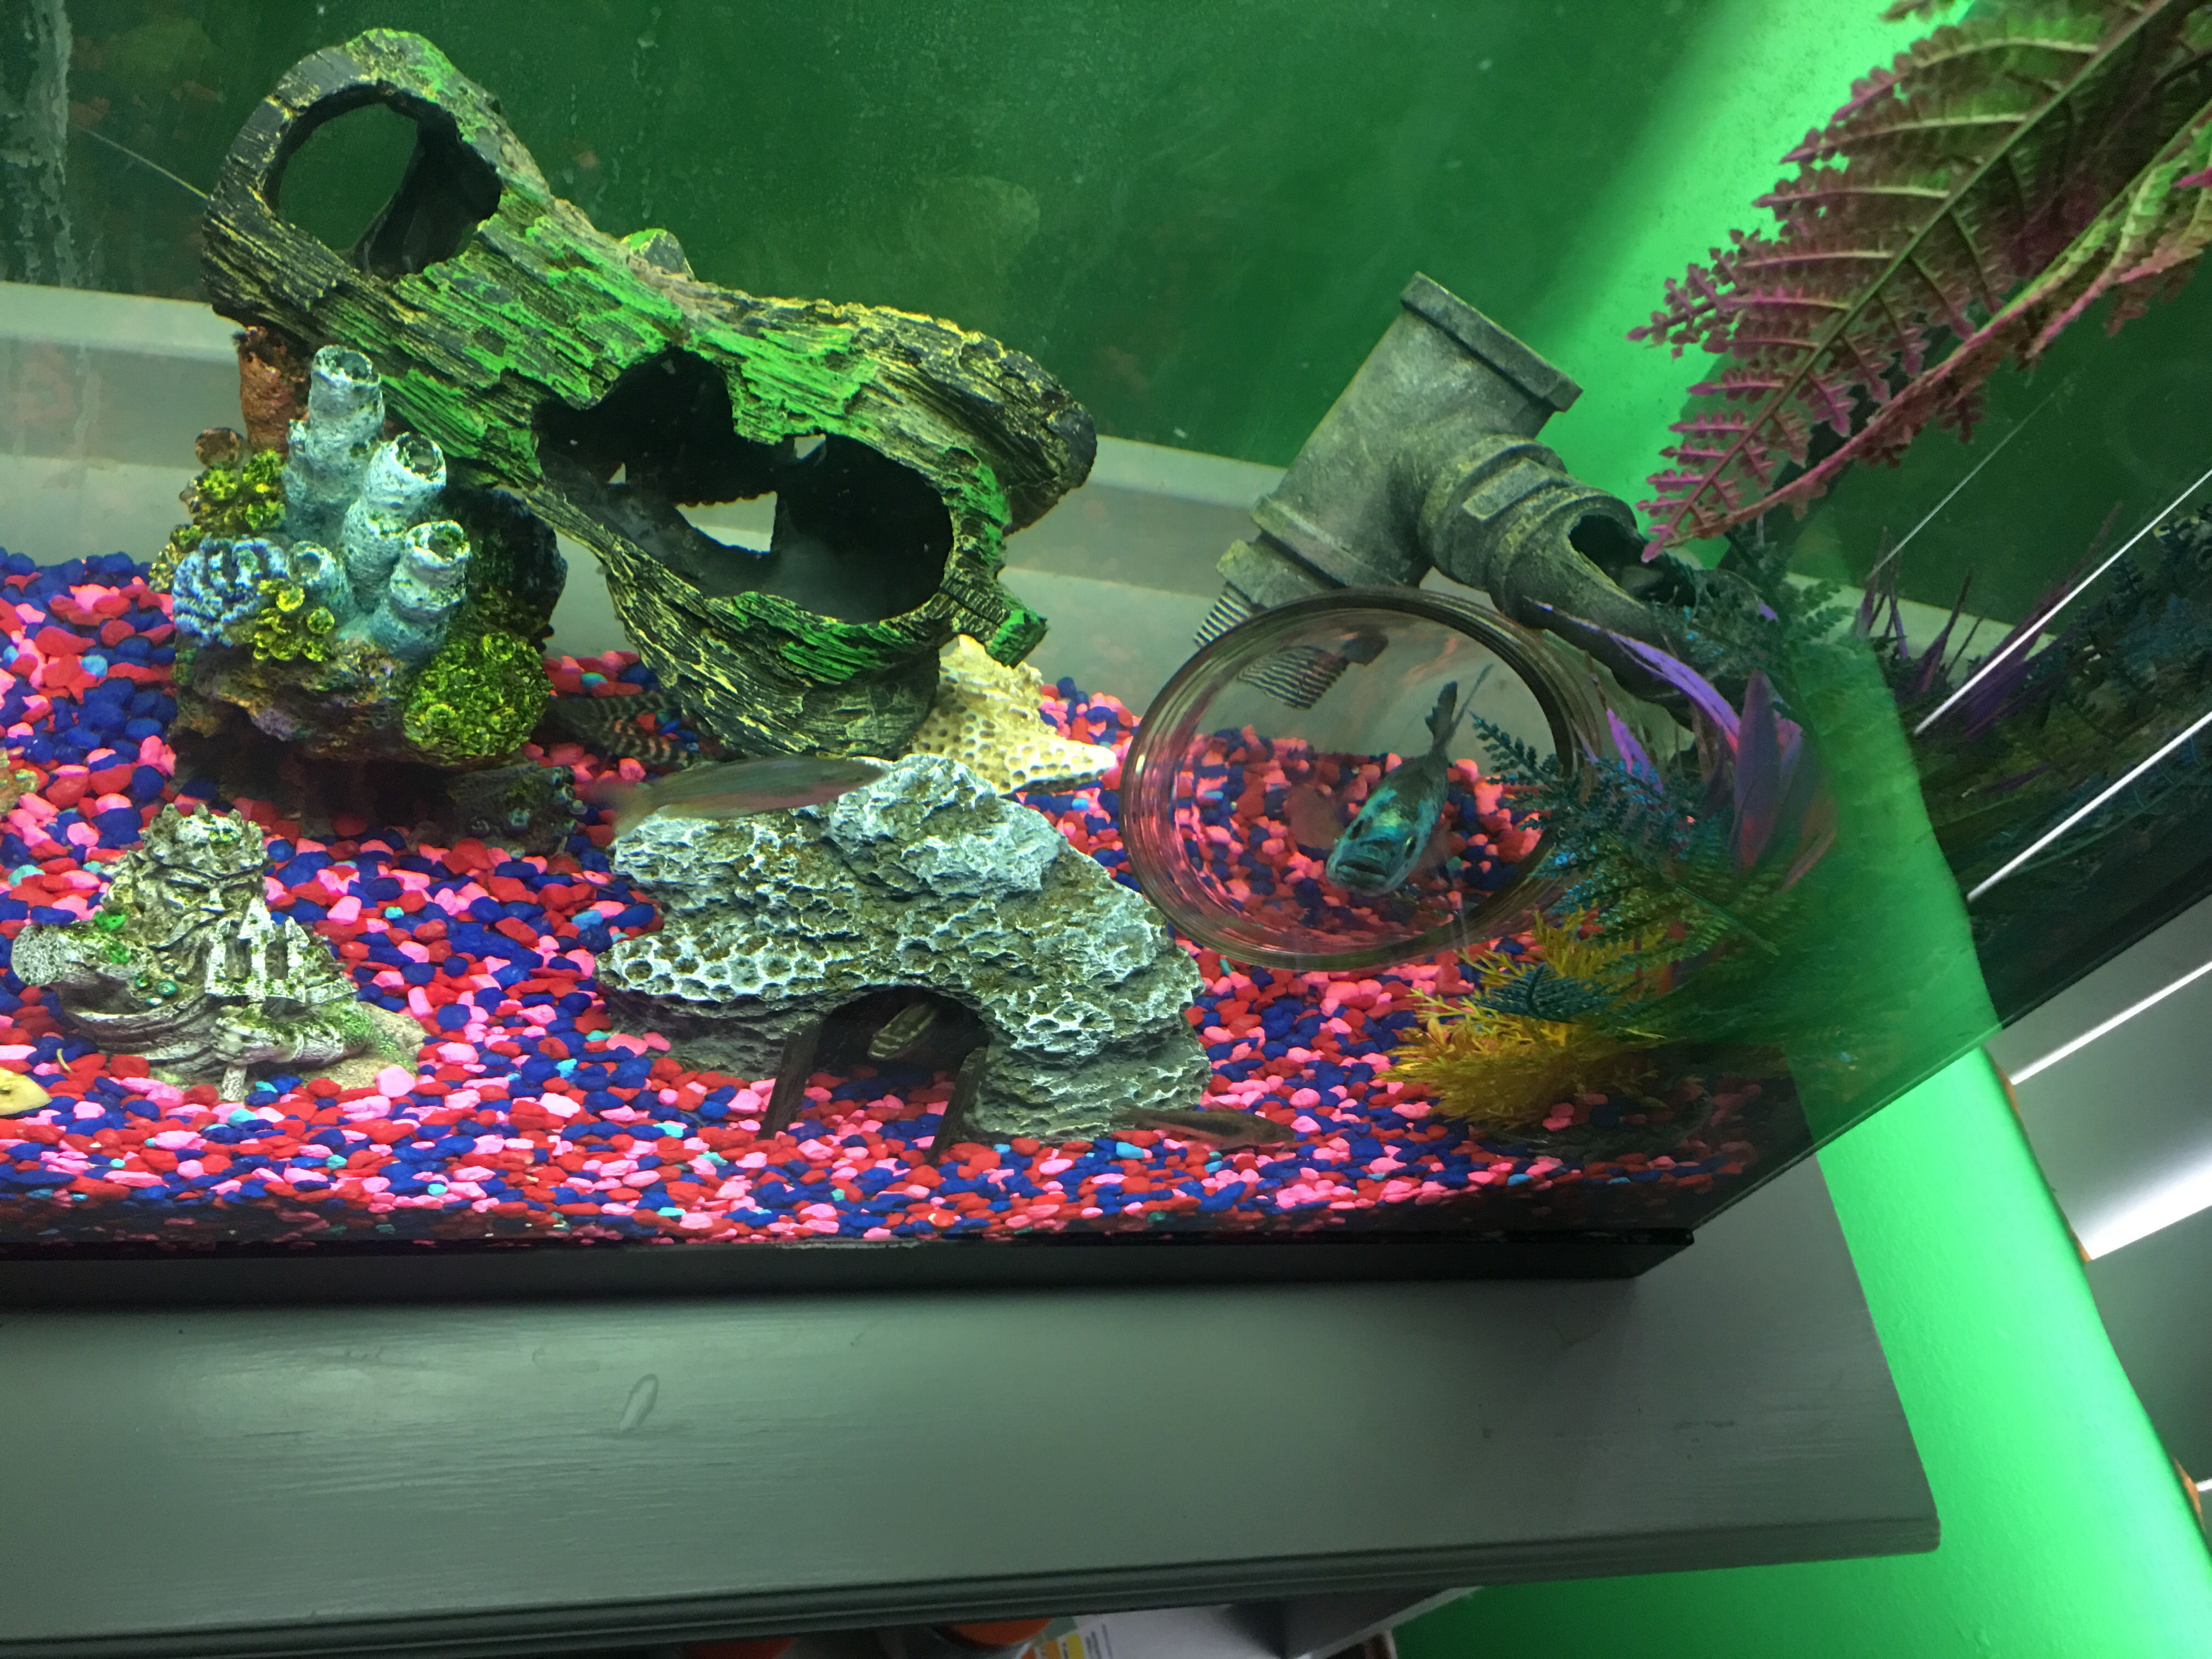 Tank decor with fish Electric blue jack Dempsey cichlid Synodontis